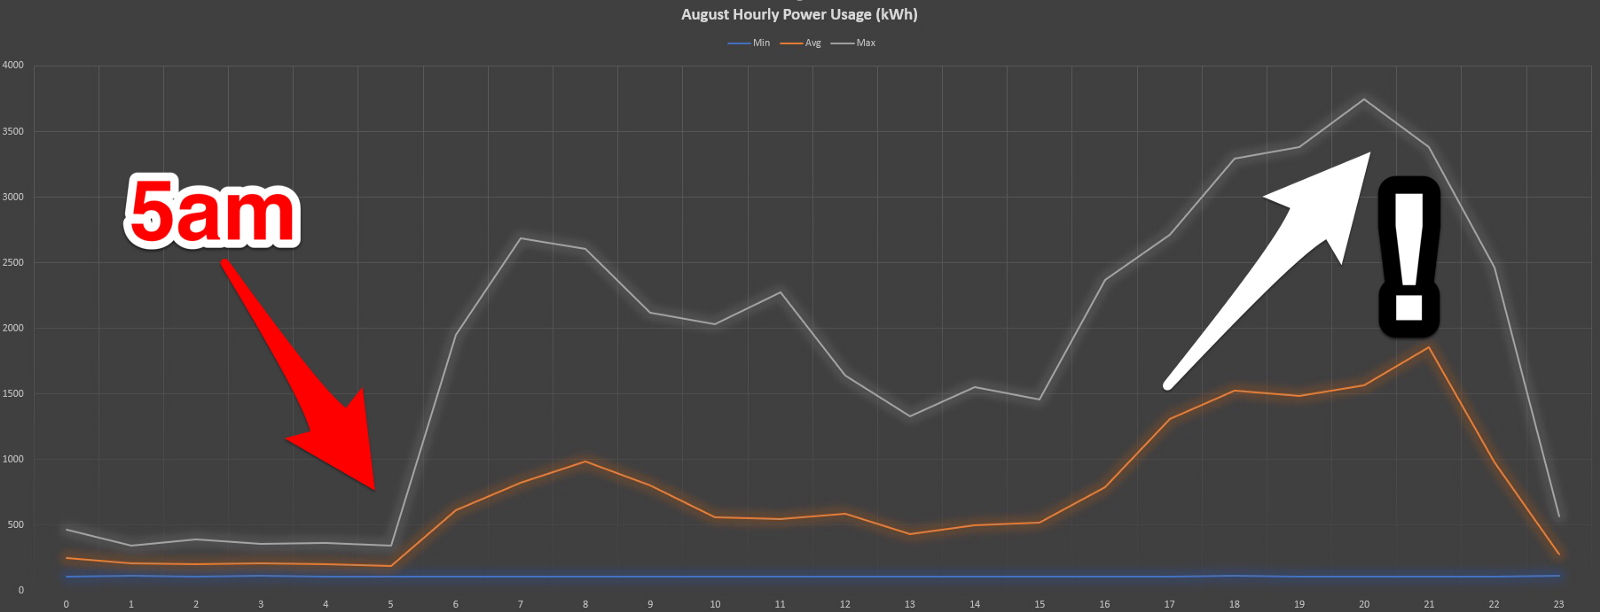 Home Power Monitoring Using A Raspberry Pi Simon Aubury Medium Household Circuits Ausgrid Hourly Consumption Trends 1 Month Of Data Midnight Left To 11pm Right Minimum Shown In Blue Average Orange